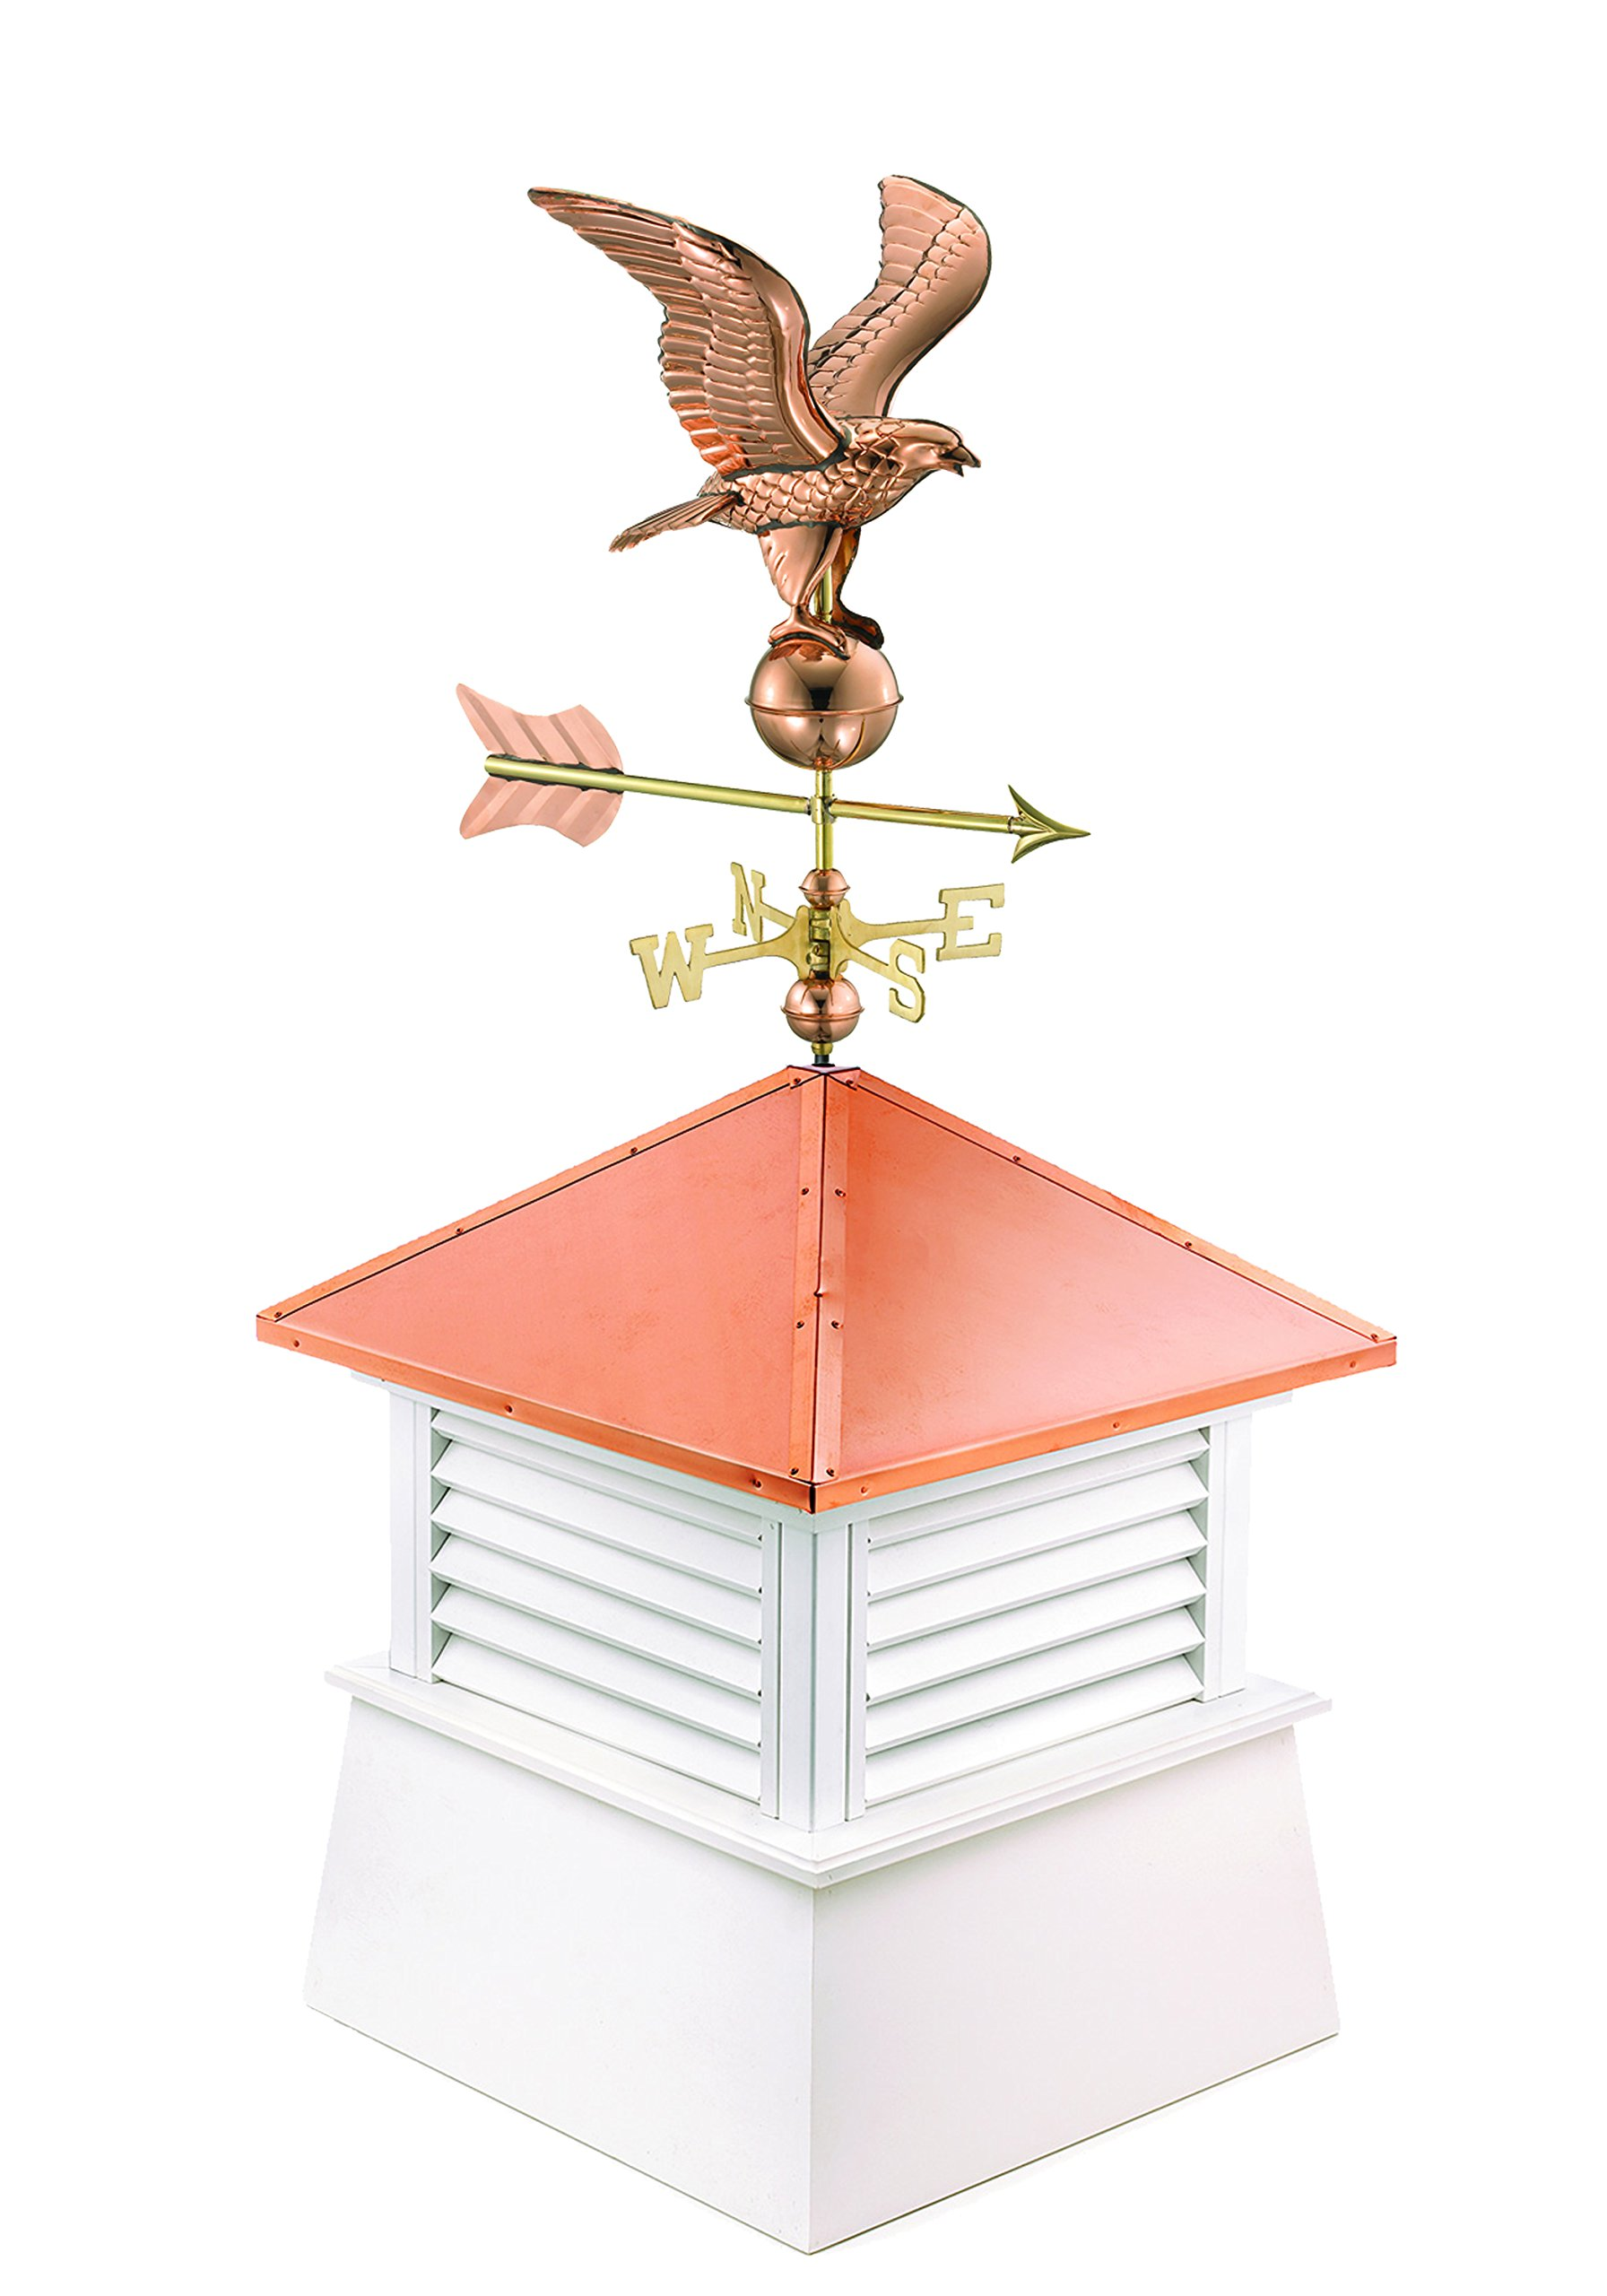 "Manchester Vinyl Cupola with Eagle Weathervane, Perfect Size for a 1 Car Garage, 26"" square x 56"" high, Pure Copper Roof"